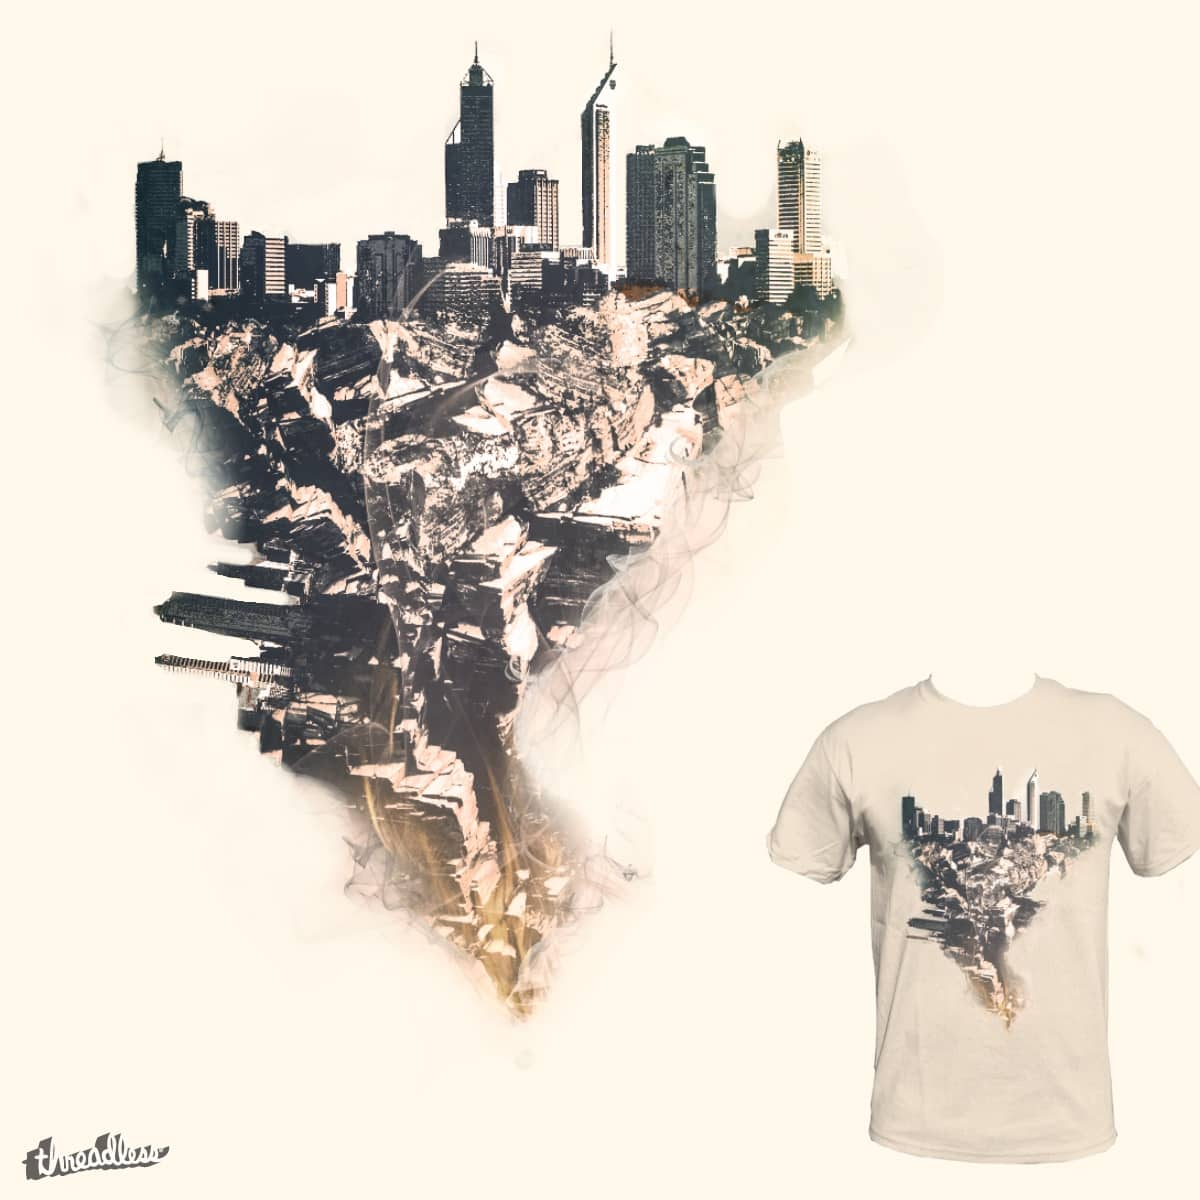 Smoked City by SylvanH on Threadless